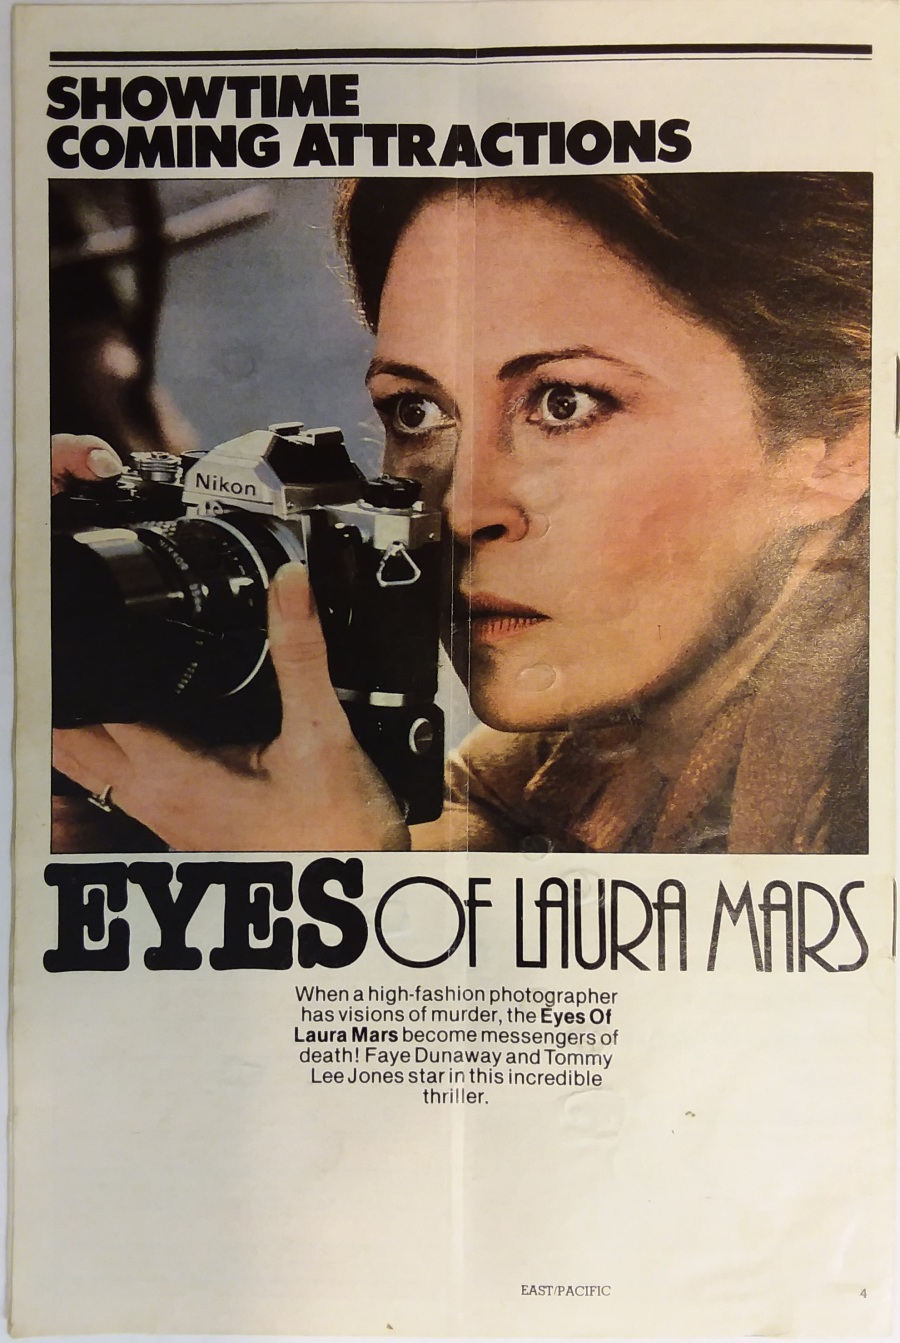 Eyes of Laura Mars - Showtime movie guide